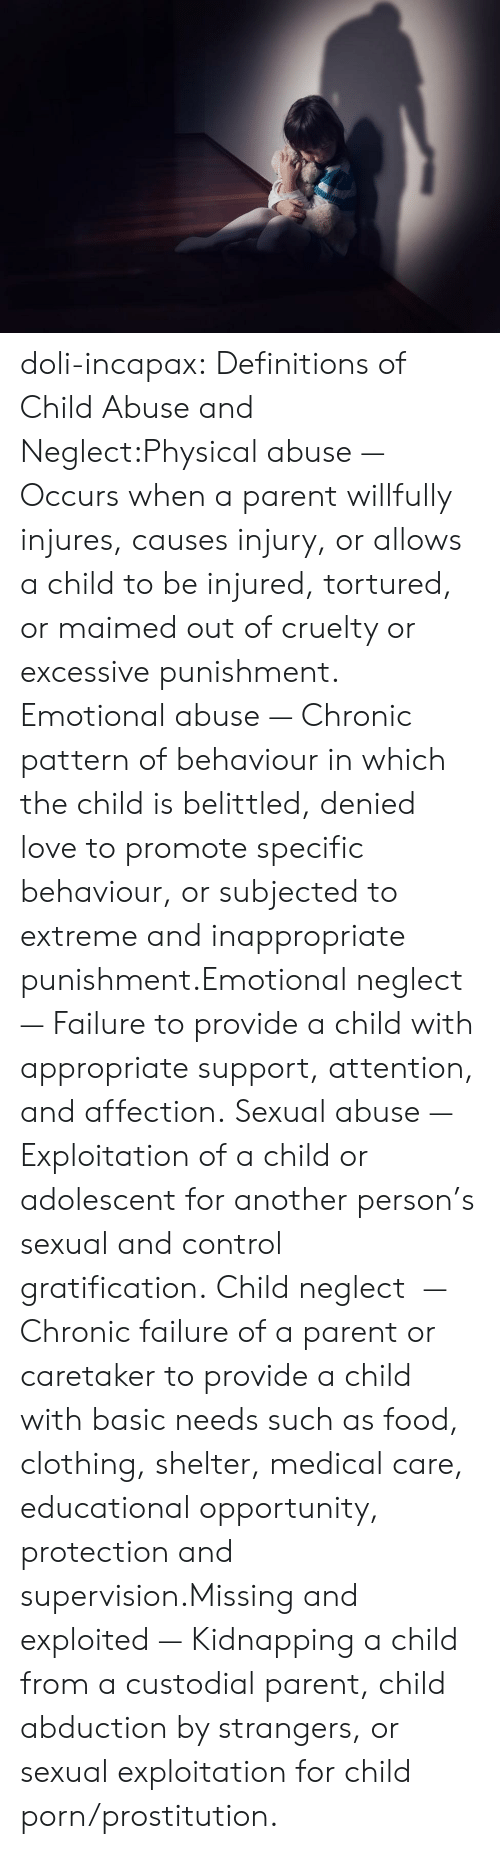 Gratification: doli-incapax:  Definitions of Child Abuse and Neglect:Physical abuse  — Occurs when a parent willfully injures, causes injury, or allows a child to be injured, tortured, or maimed out of cruelty or excessive punishment. Emotional abuse  — Chronic pattern of behaviour in which the child is belittled, denied love to promote specific behaviour, or subjected to extreme and inappropriate punishment.Emotional neglect  — Failure to provide a child with appropriate support, attention, and affection. Sexual abuse  — Exploitation of a child or adolescent for another person's sexual and control gratification. Child neglect   — Chronic failure of a parent or caretaker to provide a child with basic needs such as food, clothing, shelter, medical care, educational opportunity, protection and supervision.Missing and exploited  — Kidnapping a child from a custodial parent, child abduction by strangers, or sexual exploitation for child porn/prostitution.